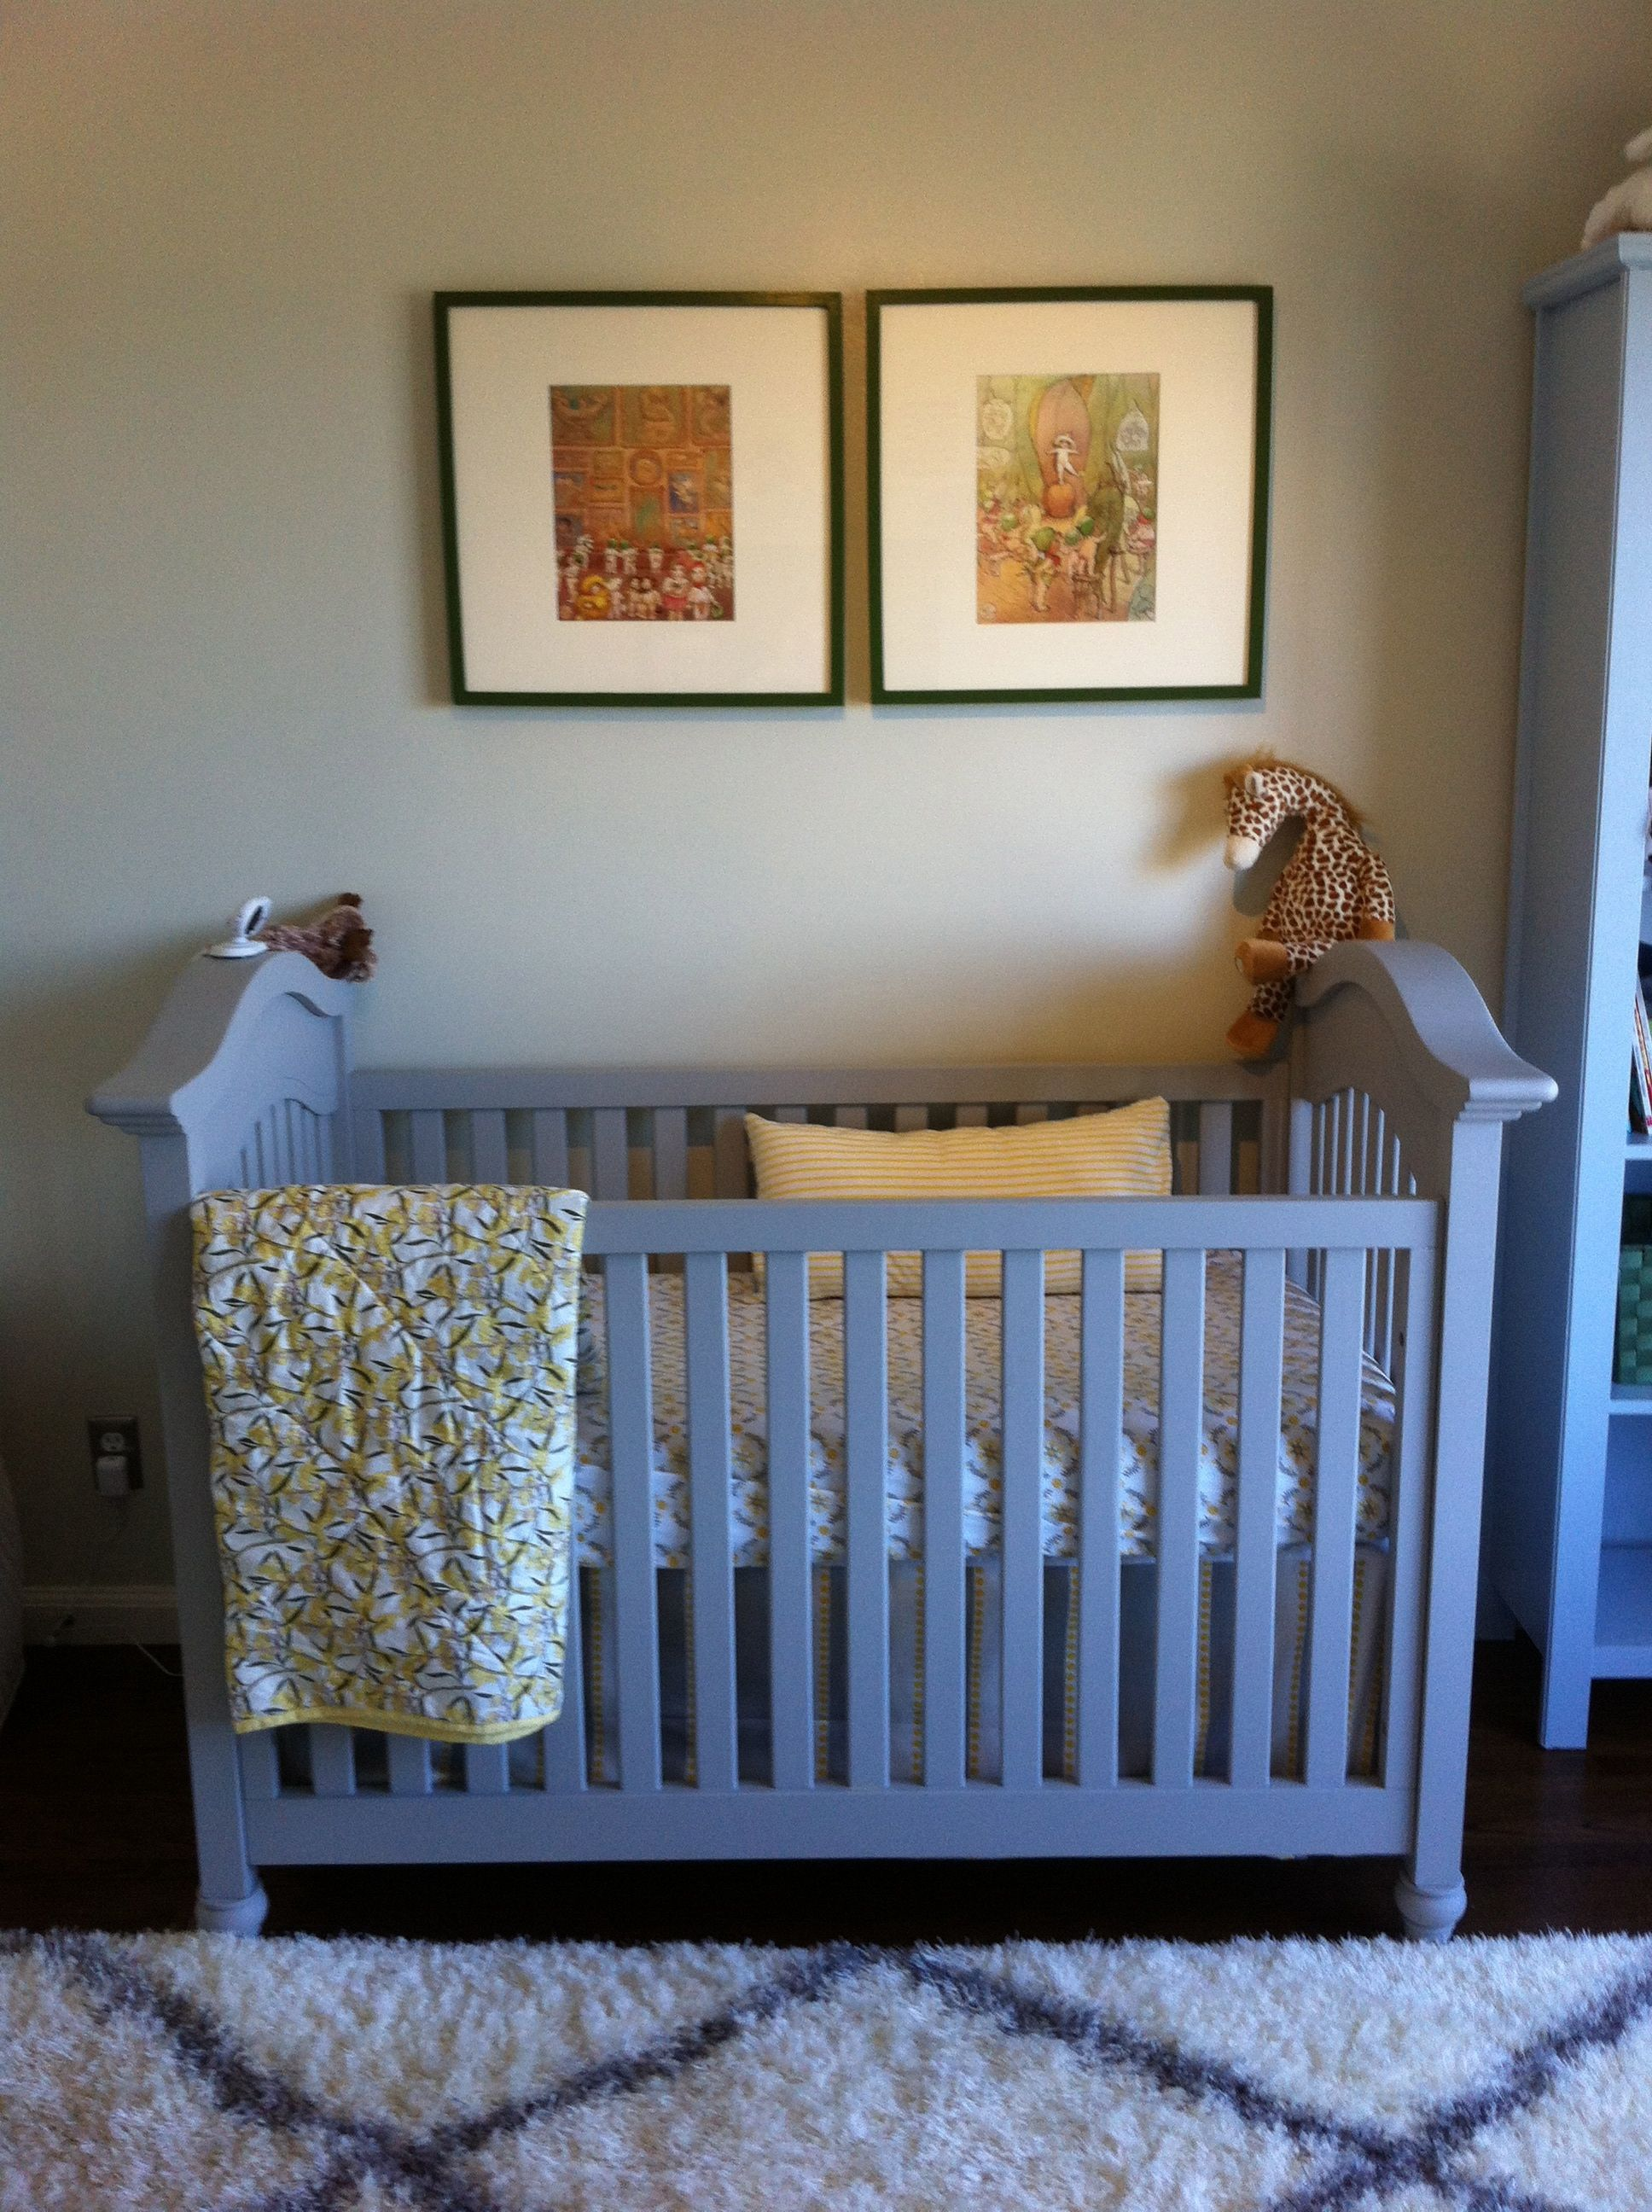 Katie Gavigan Interiors Australia Meets Mexico Baby Nursery Snugglepot And Cuddlepie Art Gray Green Blue Yellow